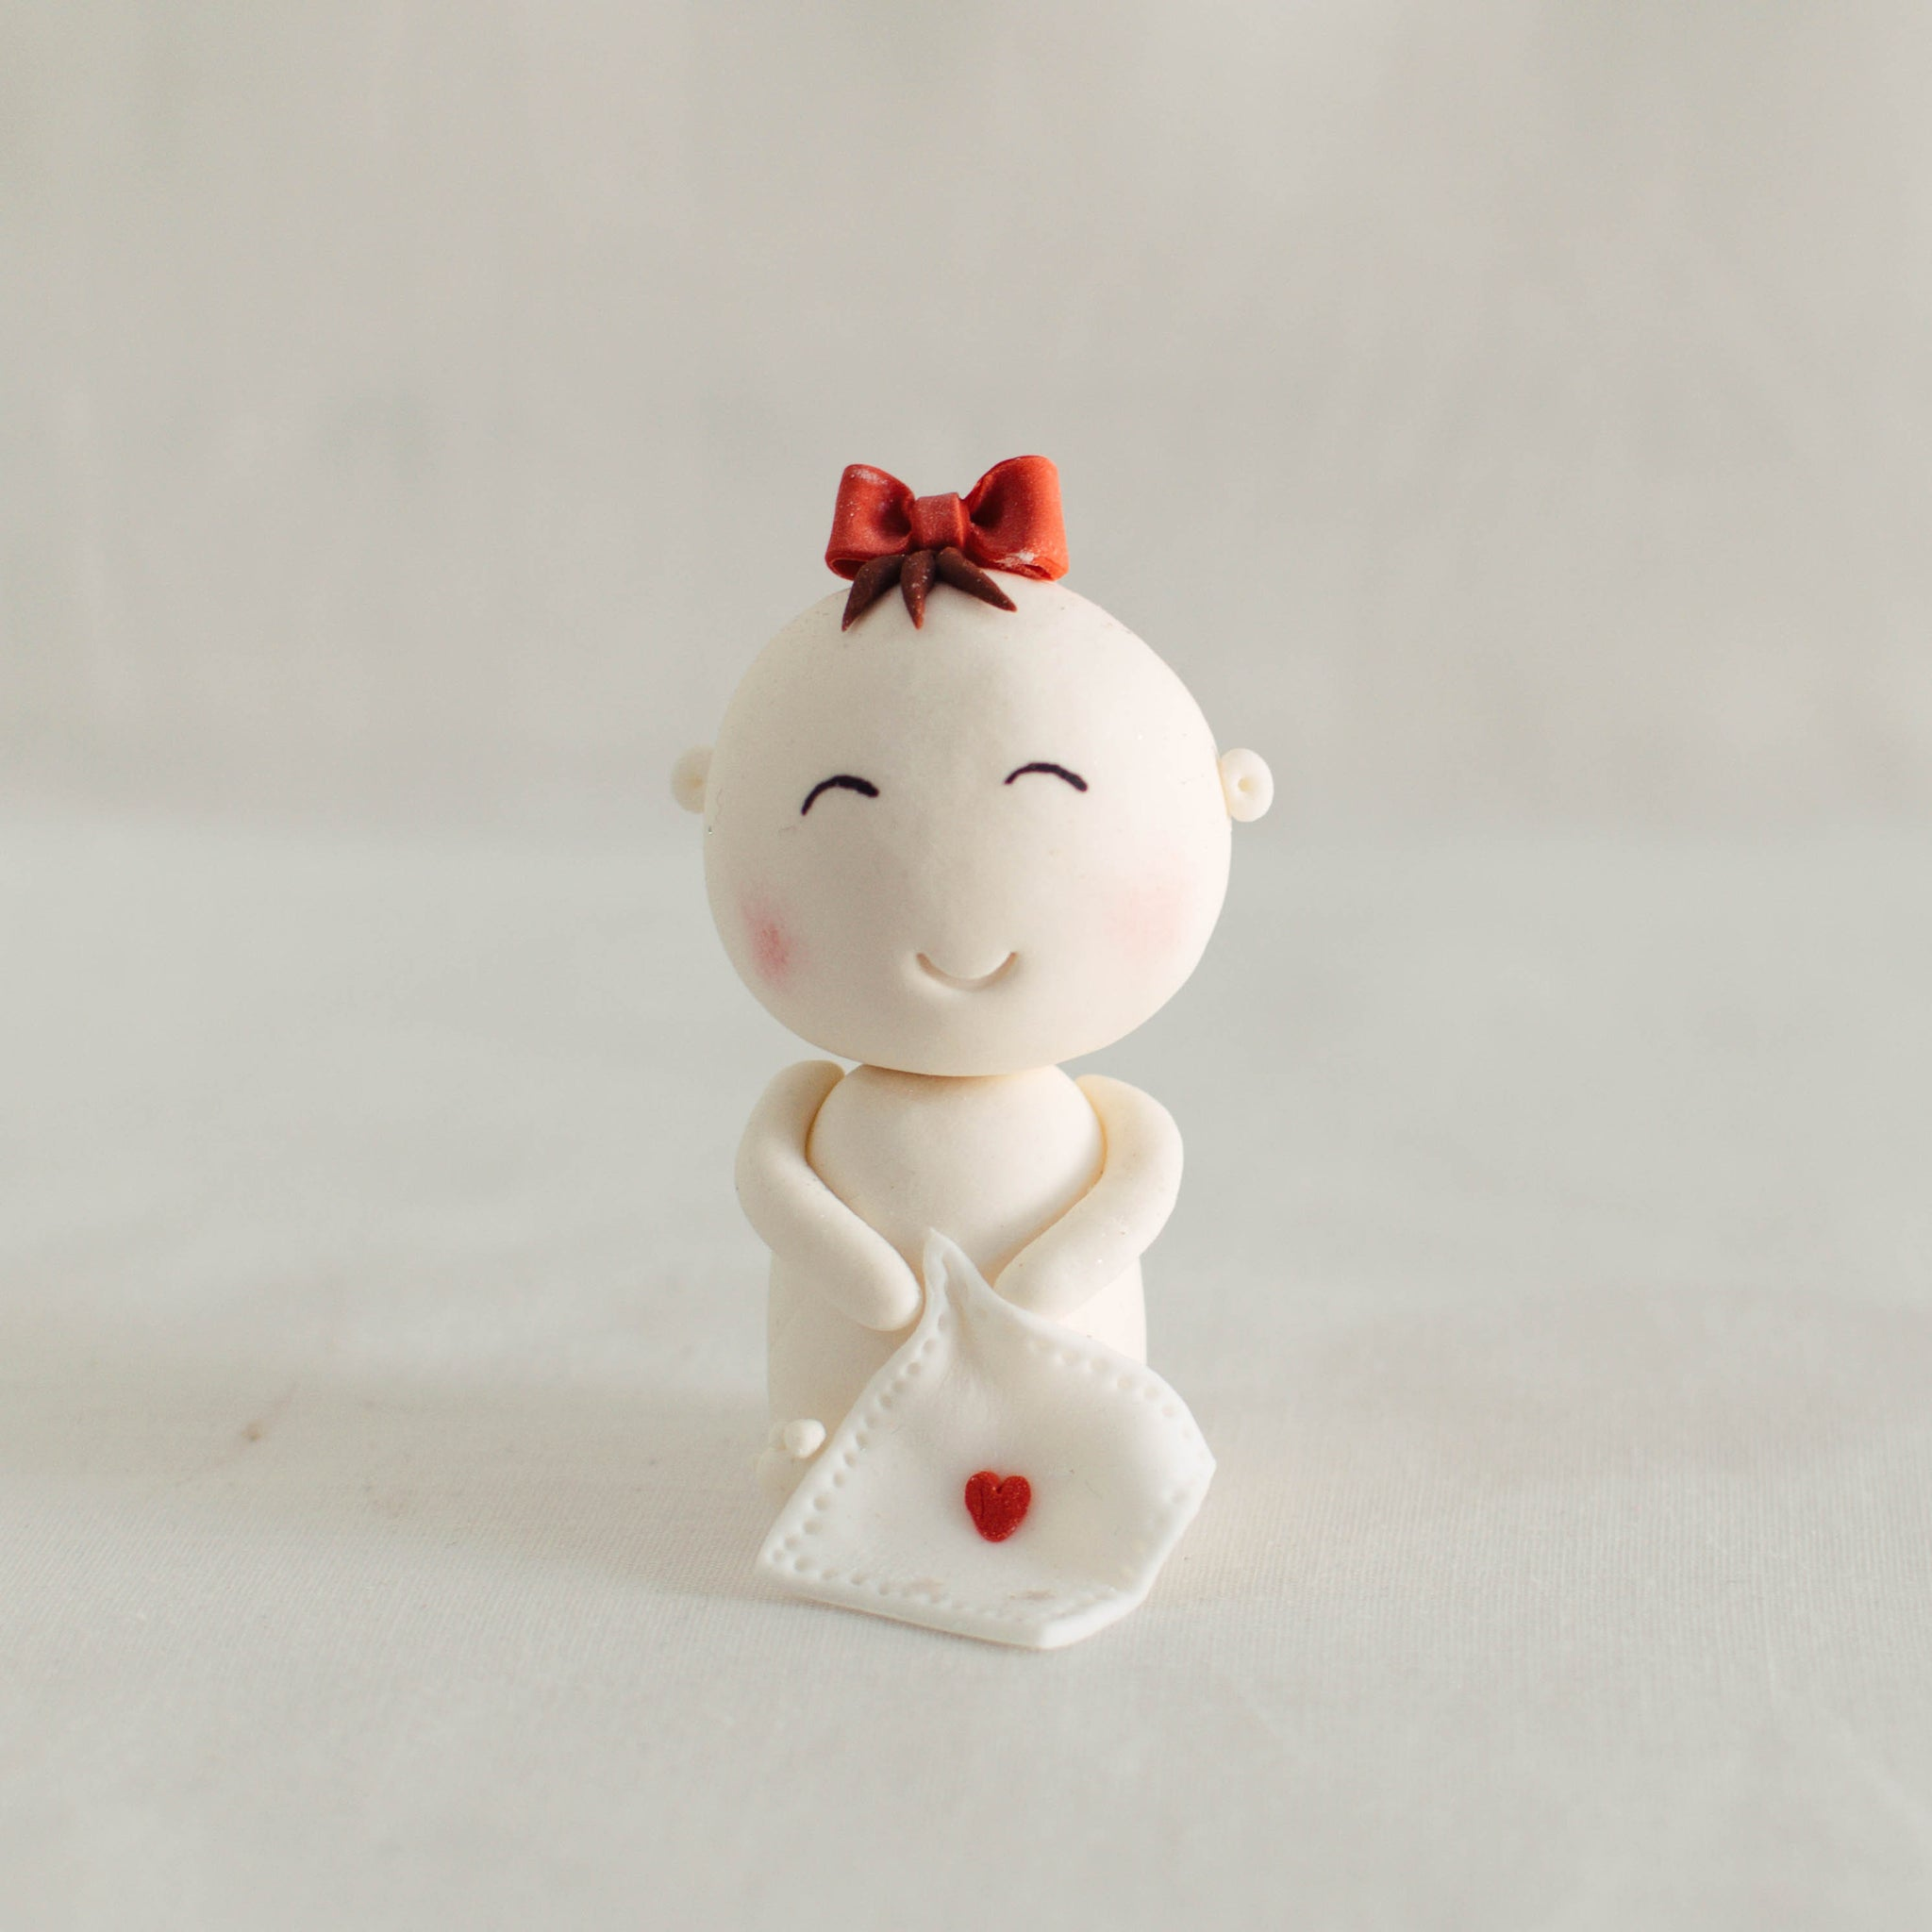 Baby Fondant Topper - Custom Bakes by Edith Patisserie